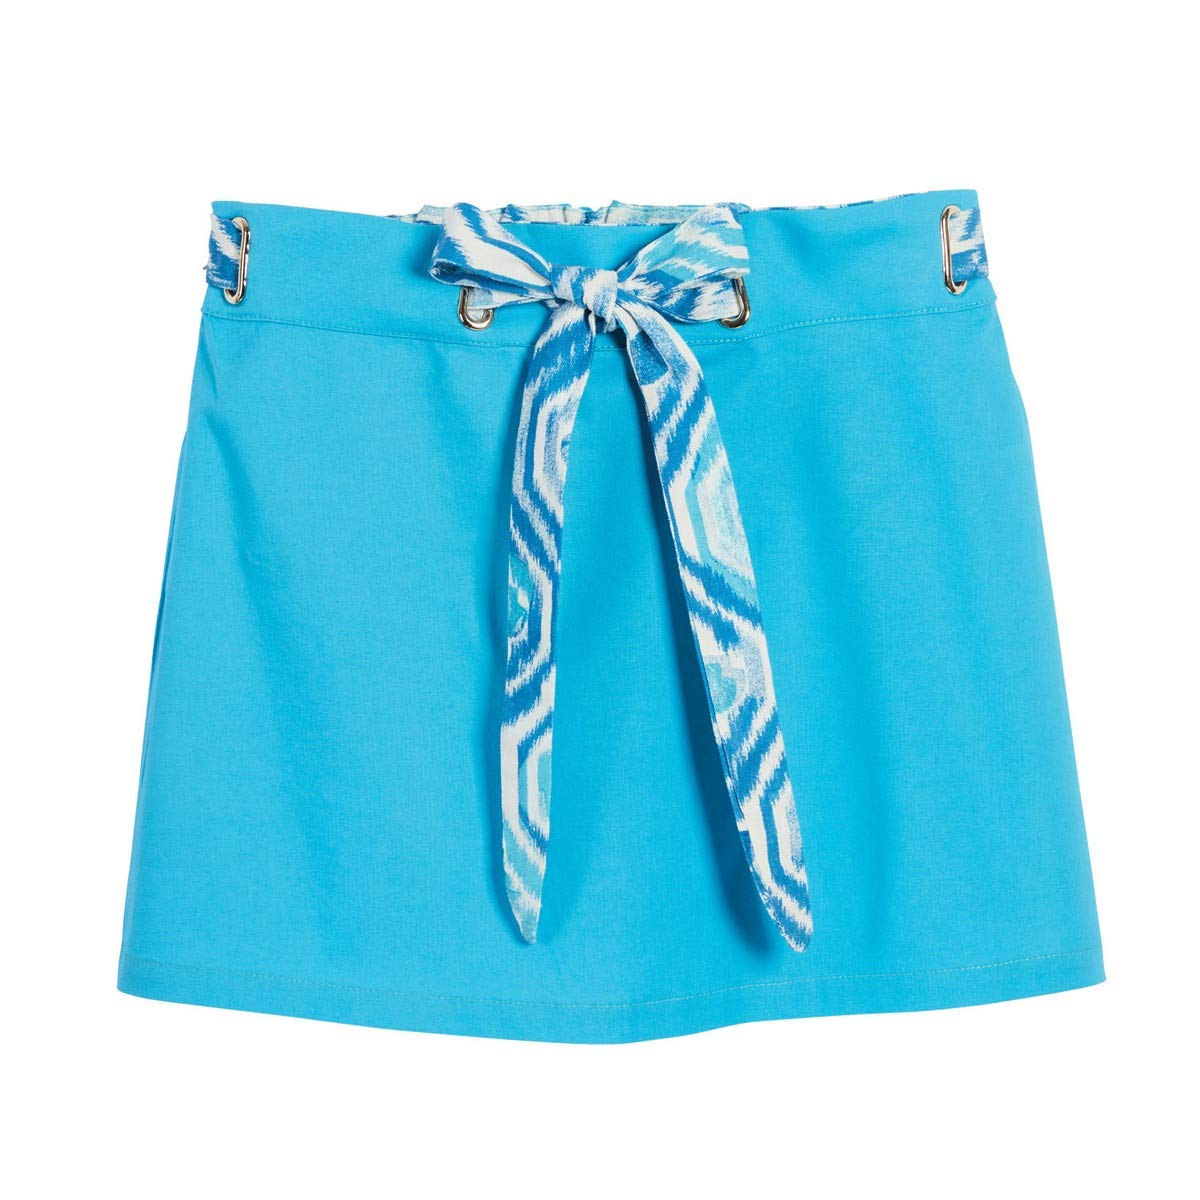 Beachcombers Girls Linen//Cotton Tie Front Skirt with Elastic Waist Band Blue Extra Large